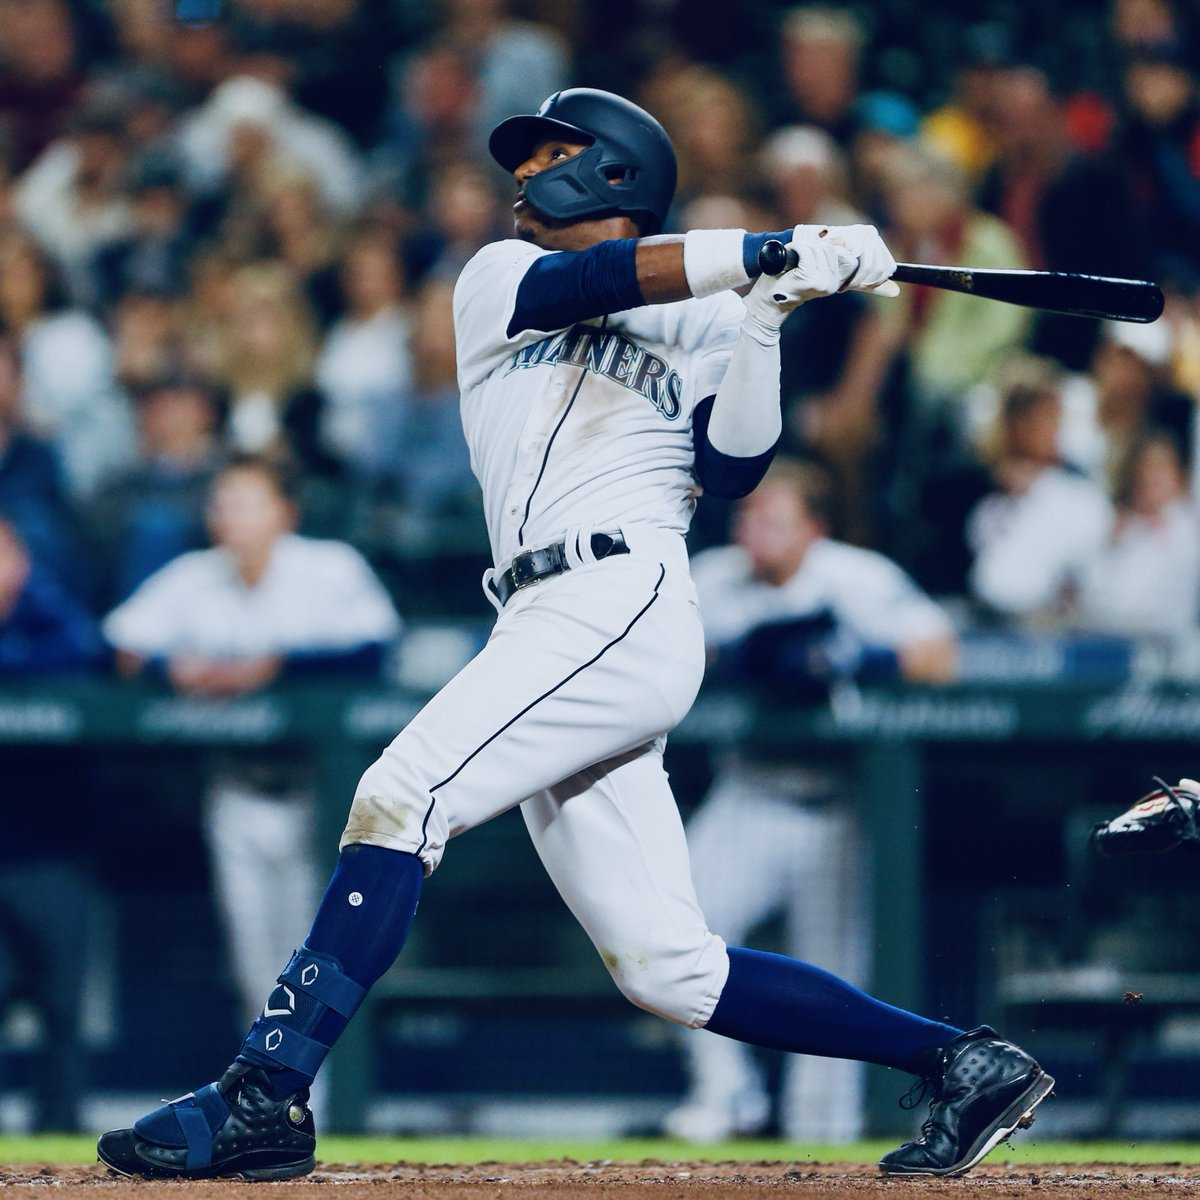 Kyle Lewis' rise was inevitable  🔺 Junior season: .395 BA, 20 HRs, 72 RBI 🔺 2016 Baseball America College Player of the Year 🔺 Drafted No. 11 overall by Mariners 🔺 Tore ACL, medial meniscus and lateral meniscus 🔺 Called up three years later 🔺 HR in first MLB game